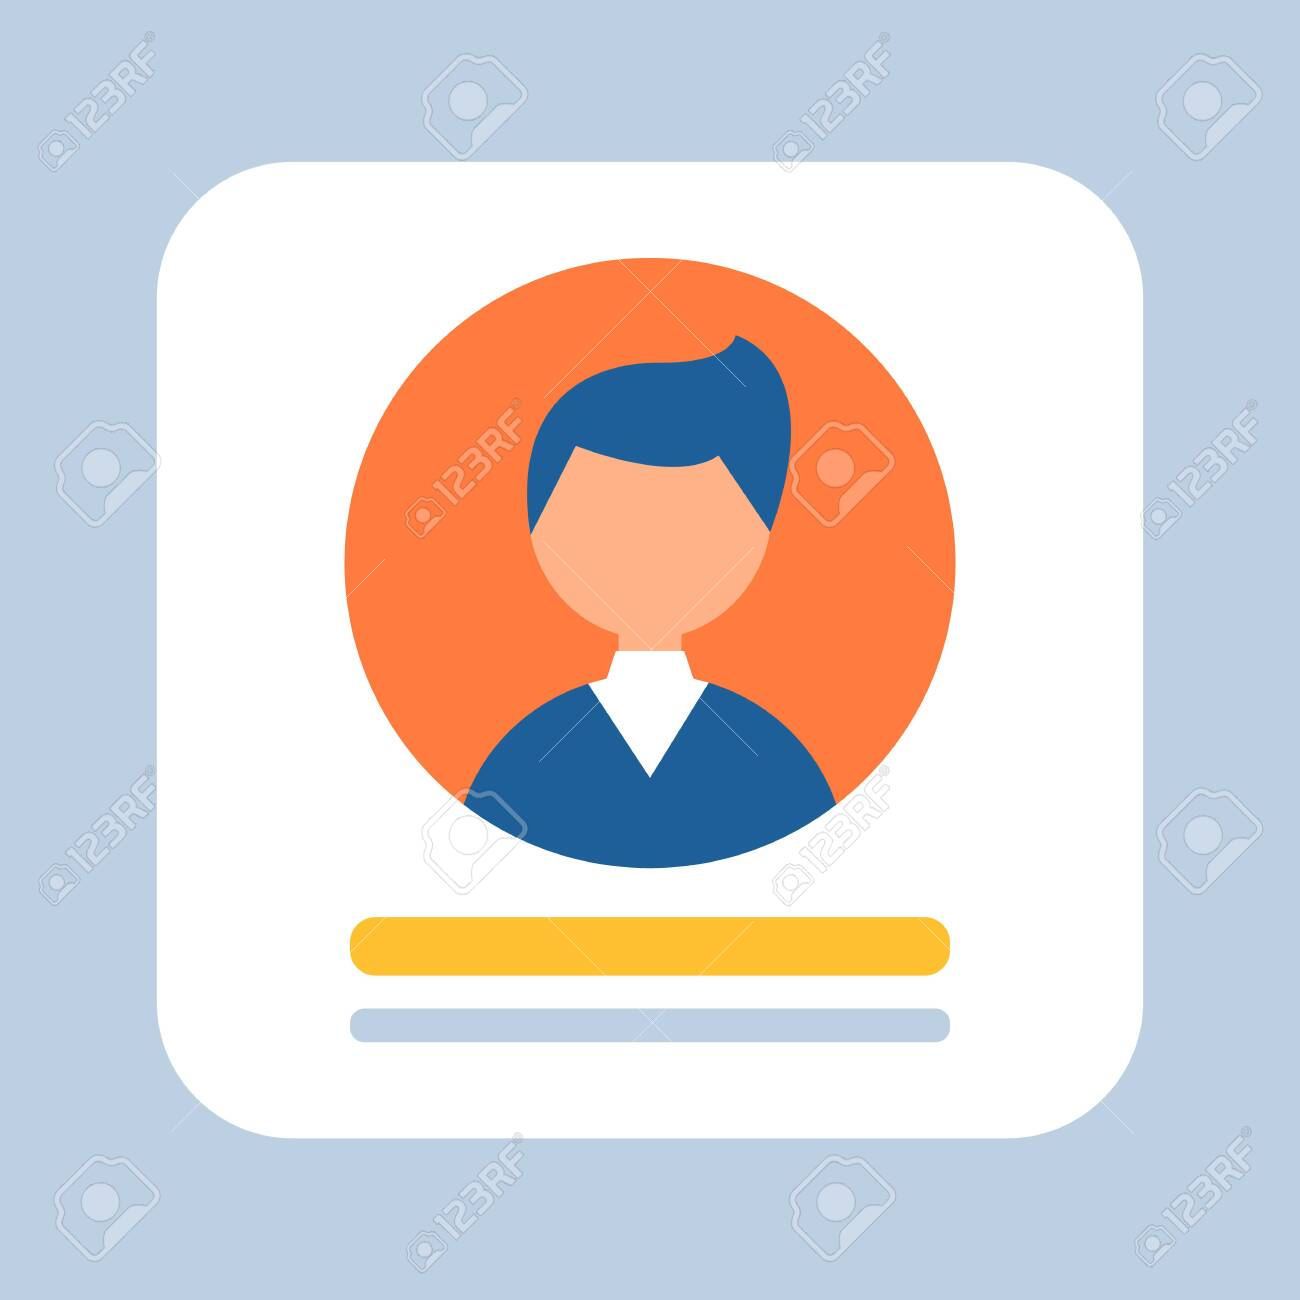 Business person represented on icon vector, businessman wearing formal suit, avatar of male working in various field, formalities squared banner flat style - 135704048